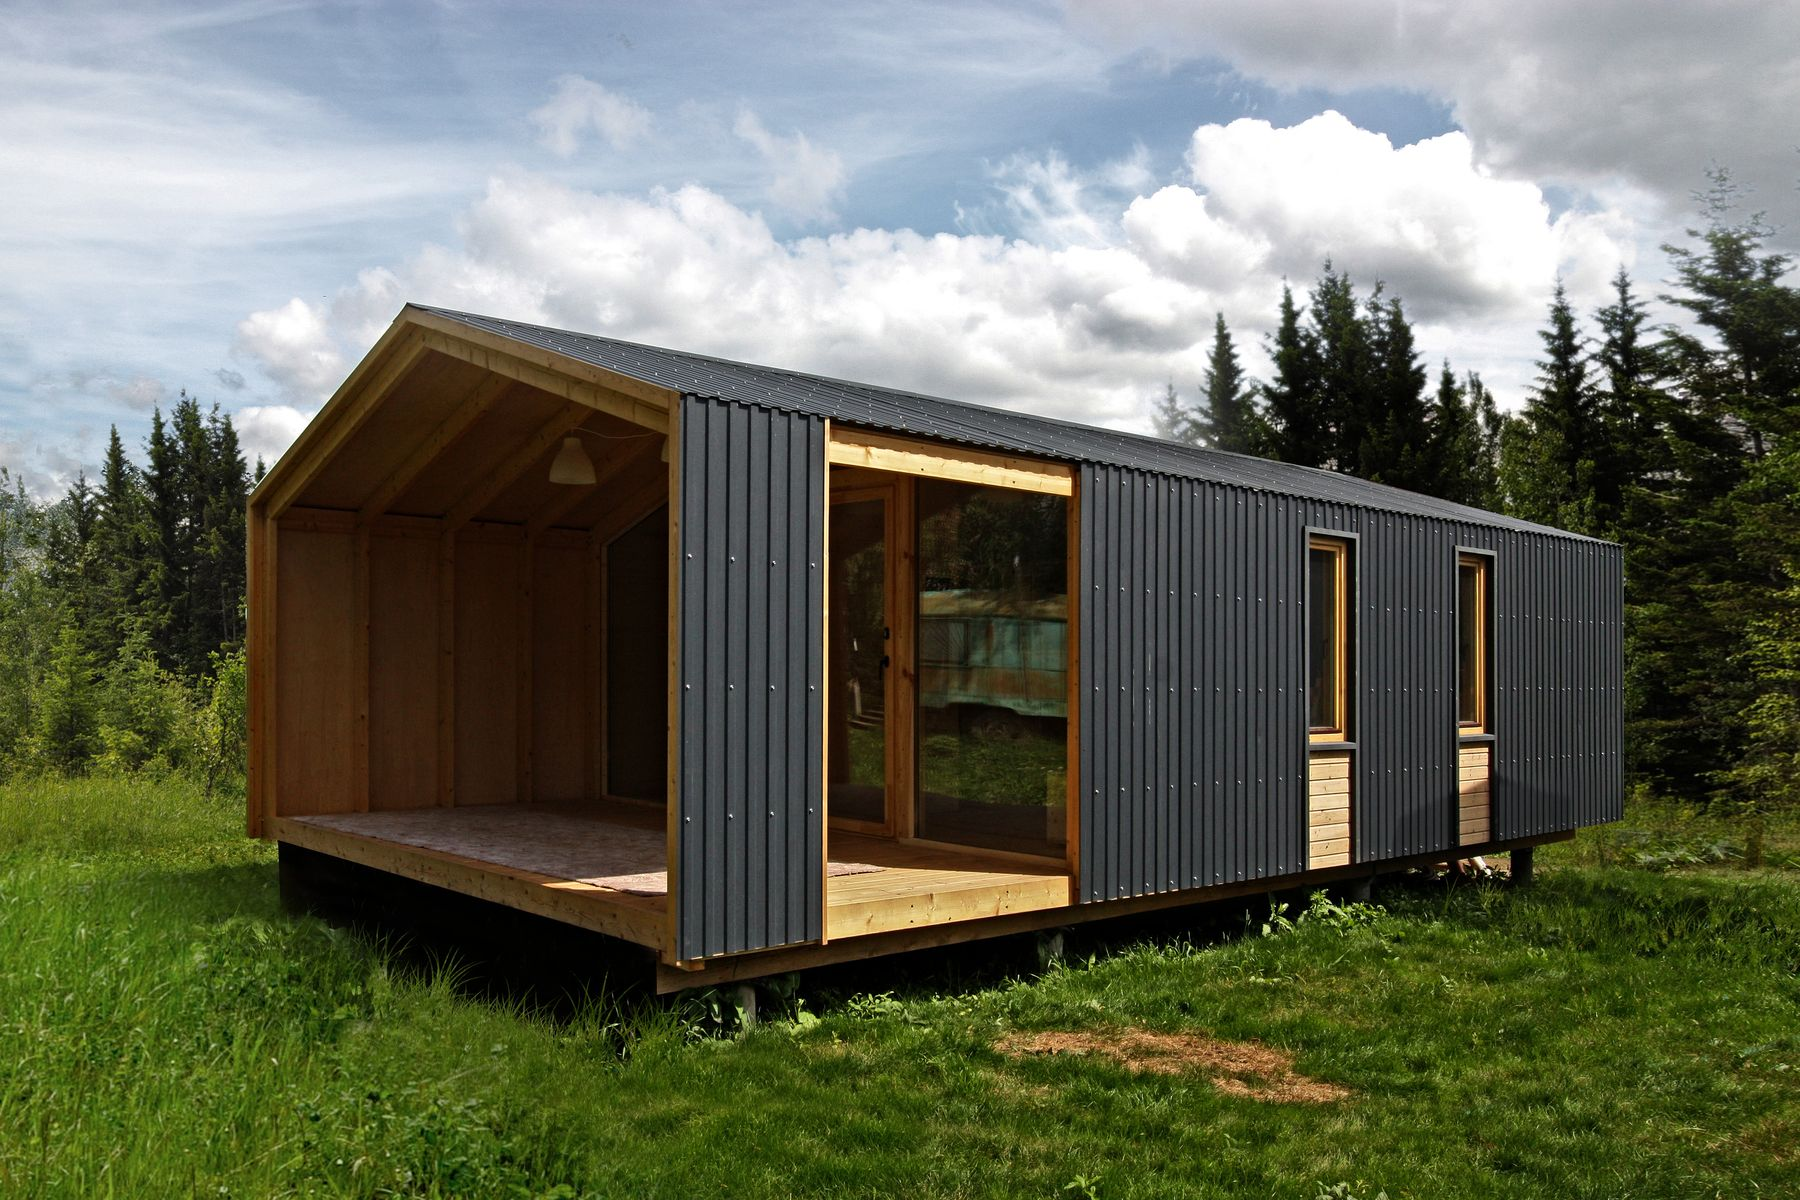 Sensational Gallery Dubldom A Modular Tiny House From Russia Bio Largest Home Design Picture Inspirations Pitcheantrous